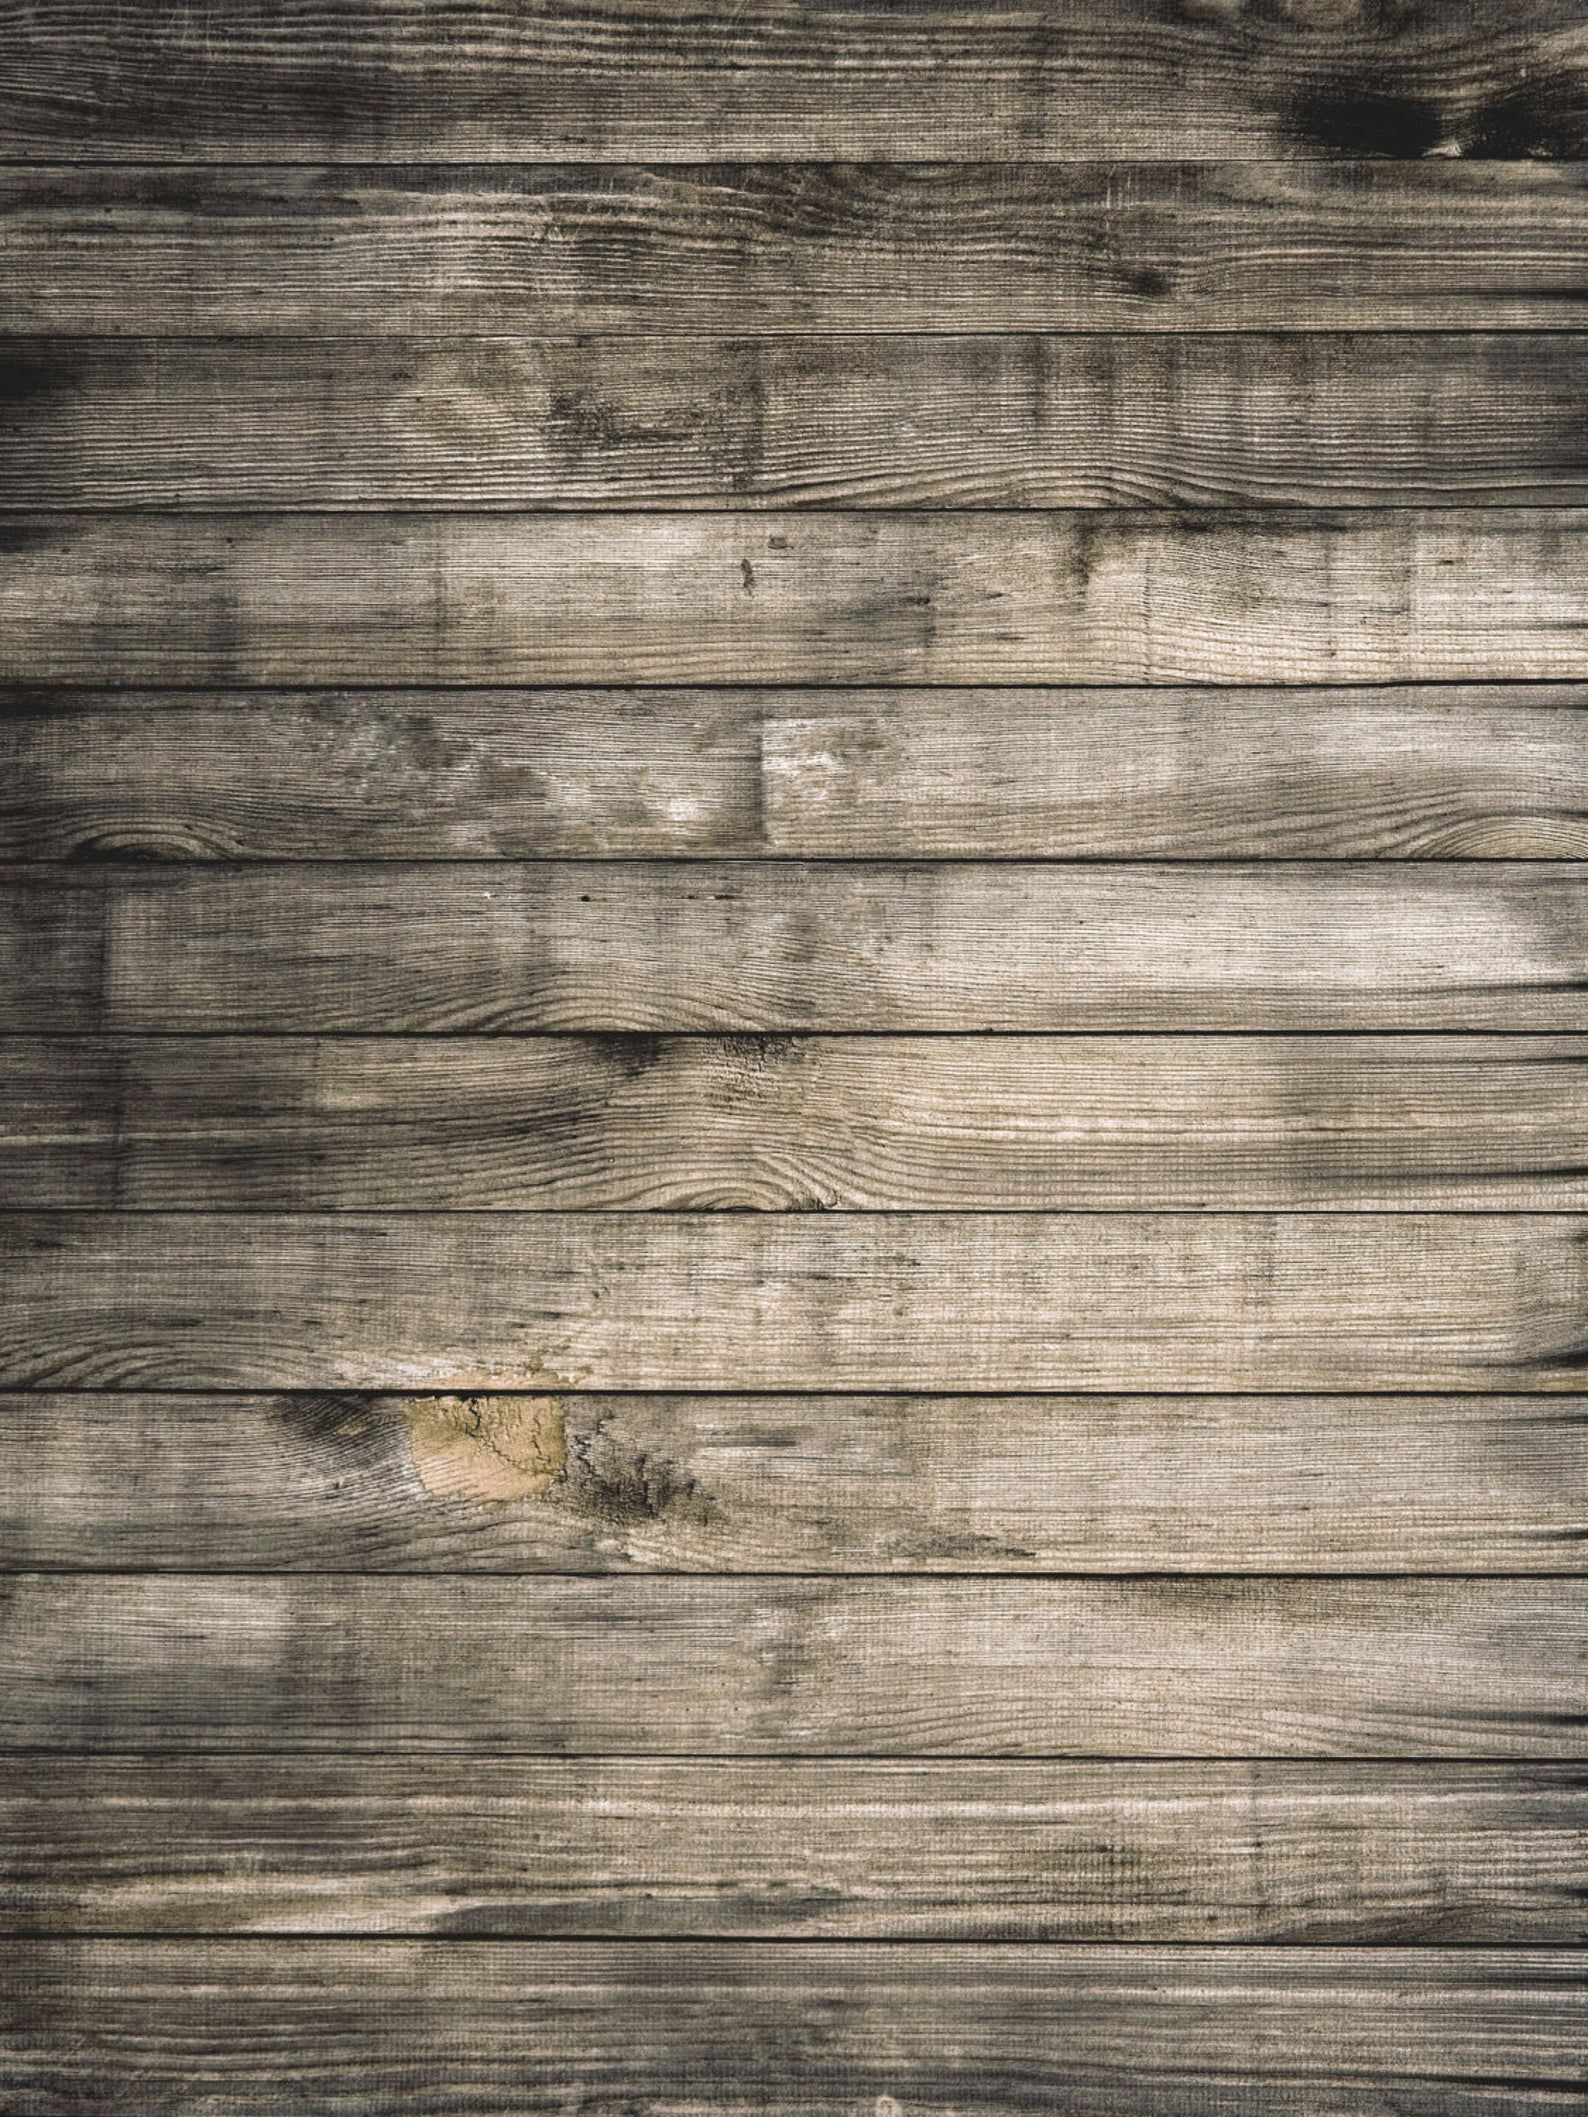 Wood Floor Backdrop Brown Rustic Vintage Rustic Background Etsy In 2020 Wood Backdrop Vinyl Backdrops Background For Photography